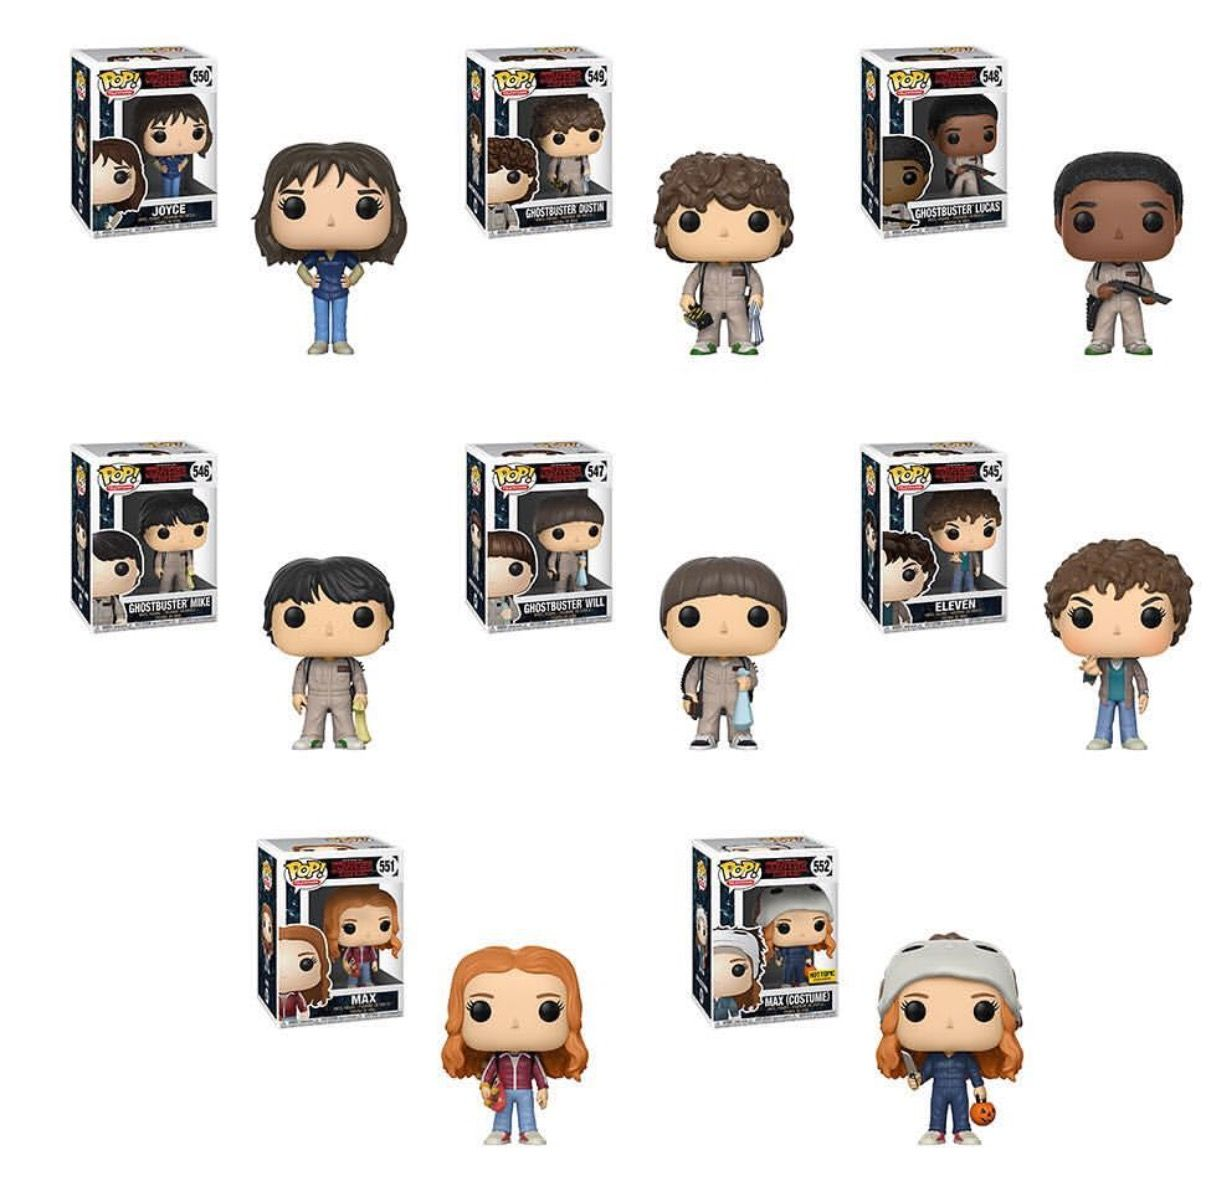 - New 3.5 inch Funko Mystery Mini Figure Stranger Things S2 WILL THE WISE